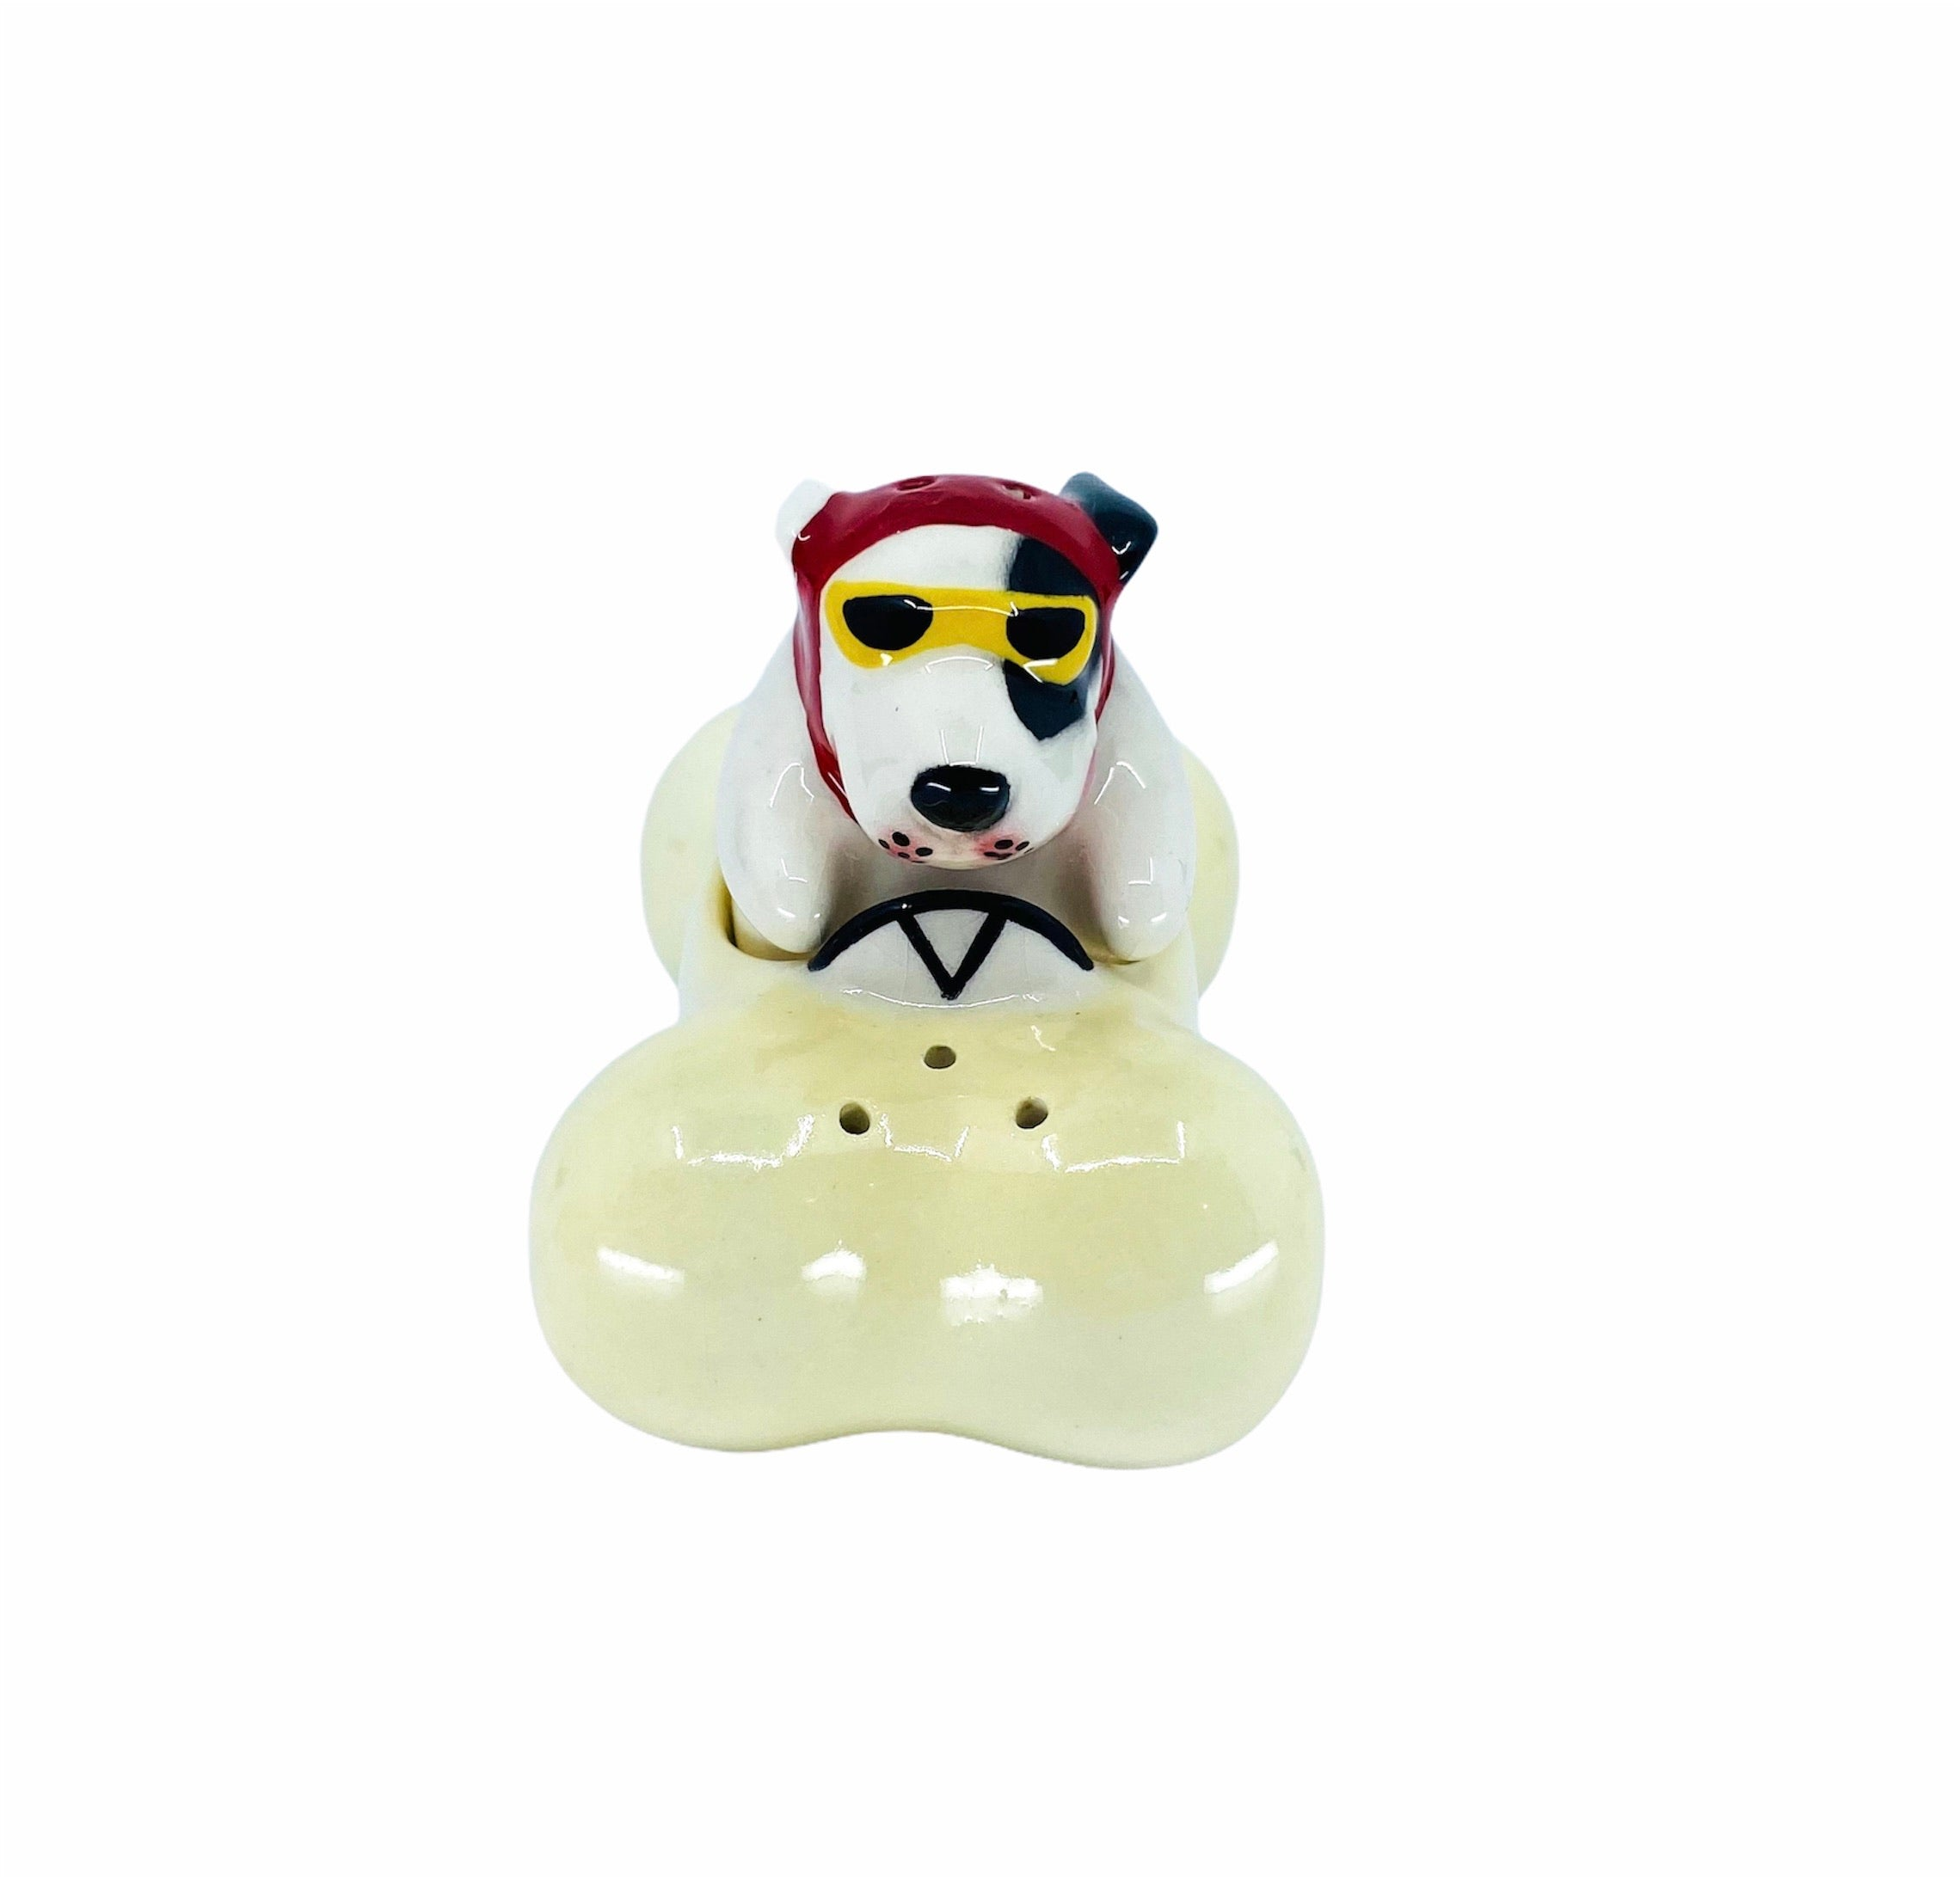 Vintage Dog Driving Bone Car Salt & Pepper Shaker